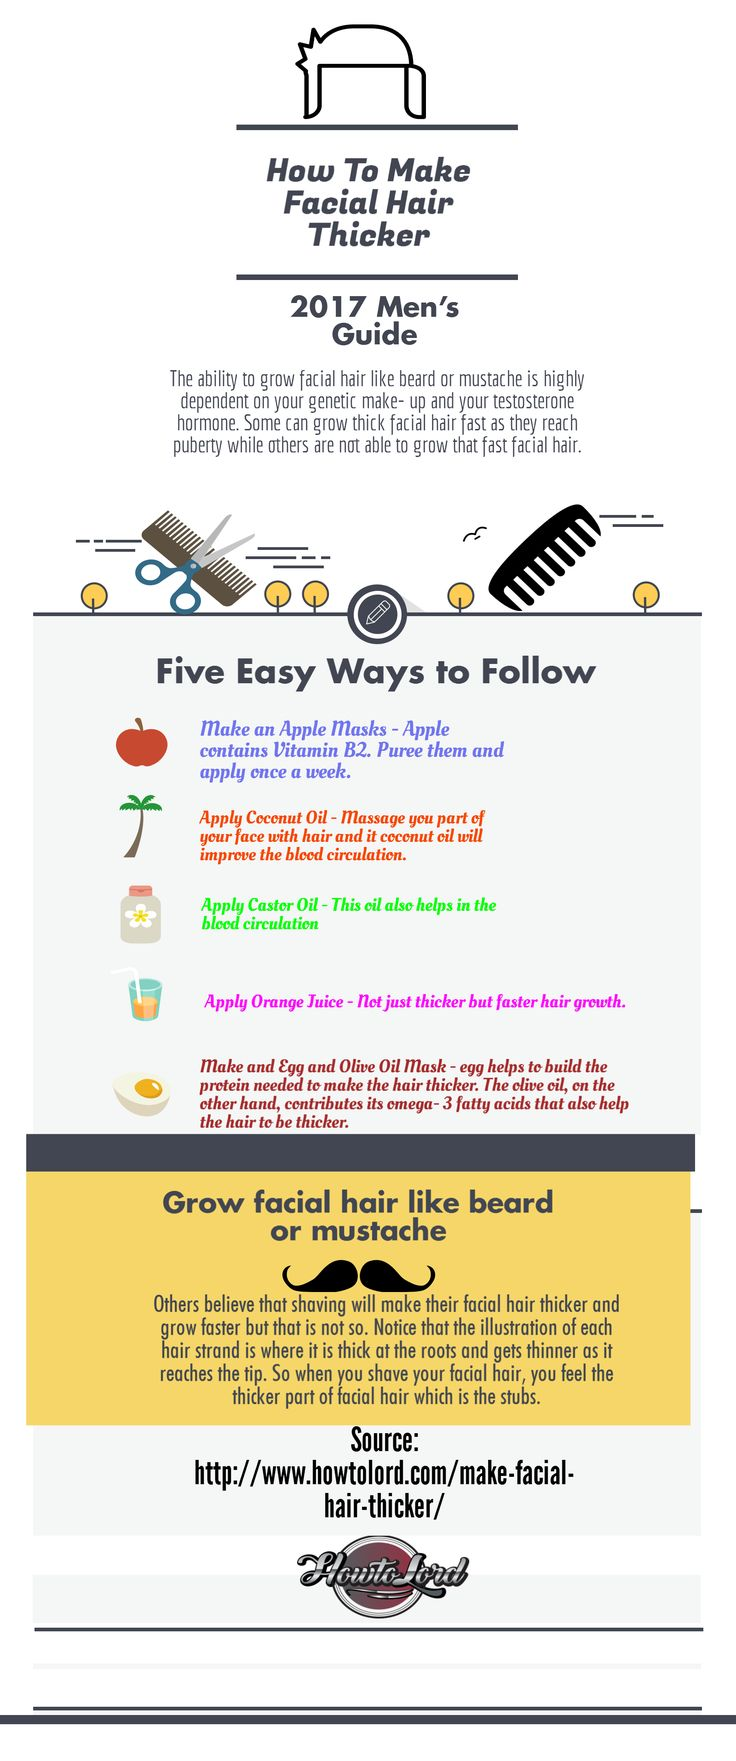 The ability to grow facial hair like beard or mustache is highly dependent on your genetic make- up and your testosterone hormone. Some can grow thick facial hair fast as they reach puberty while others are not able to grow that fast facial hair.